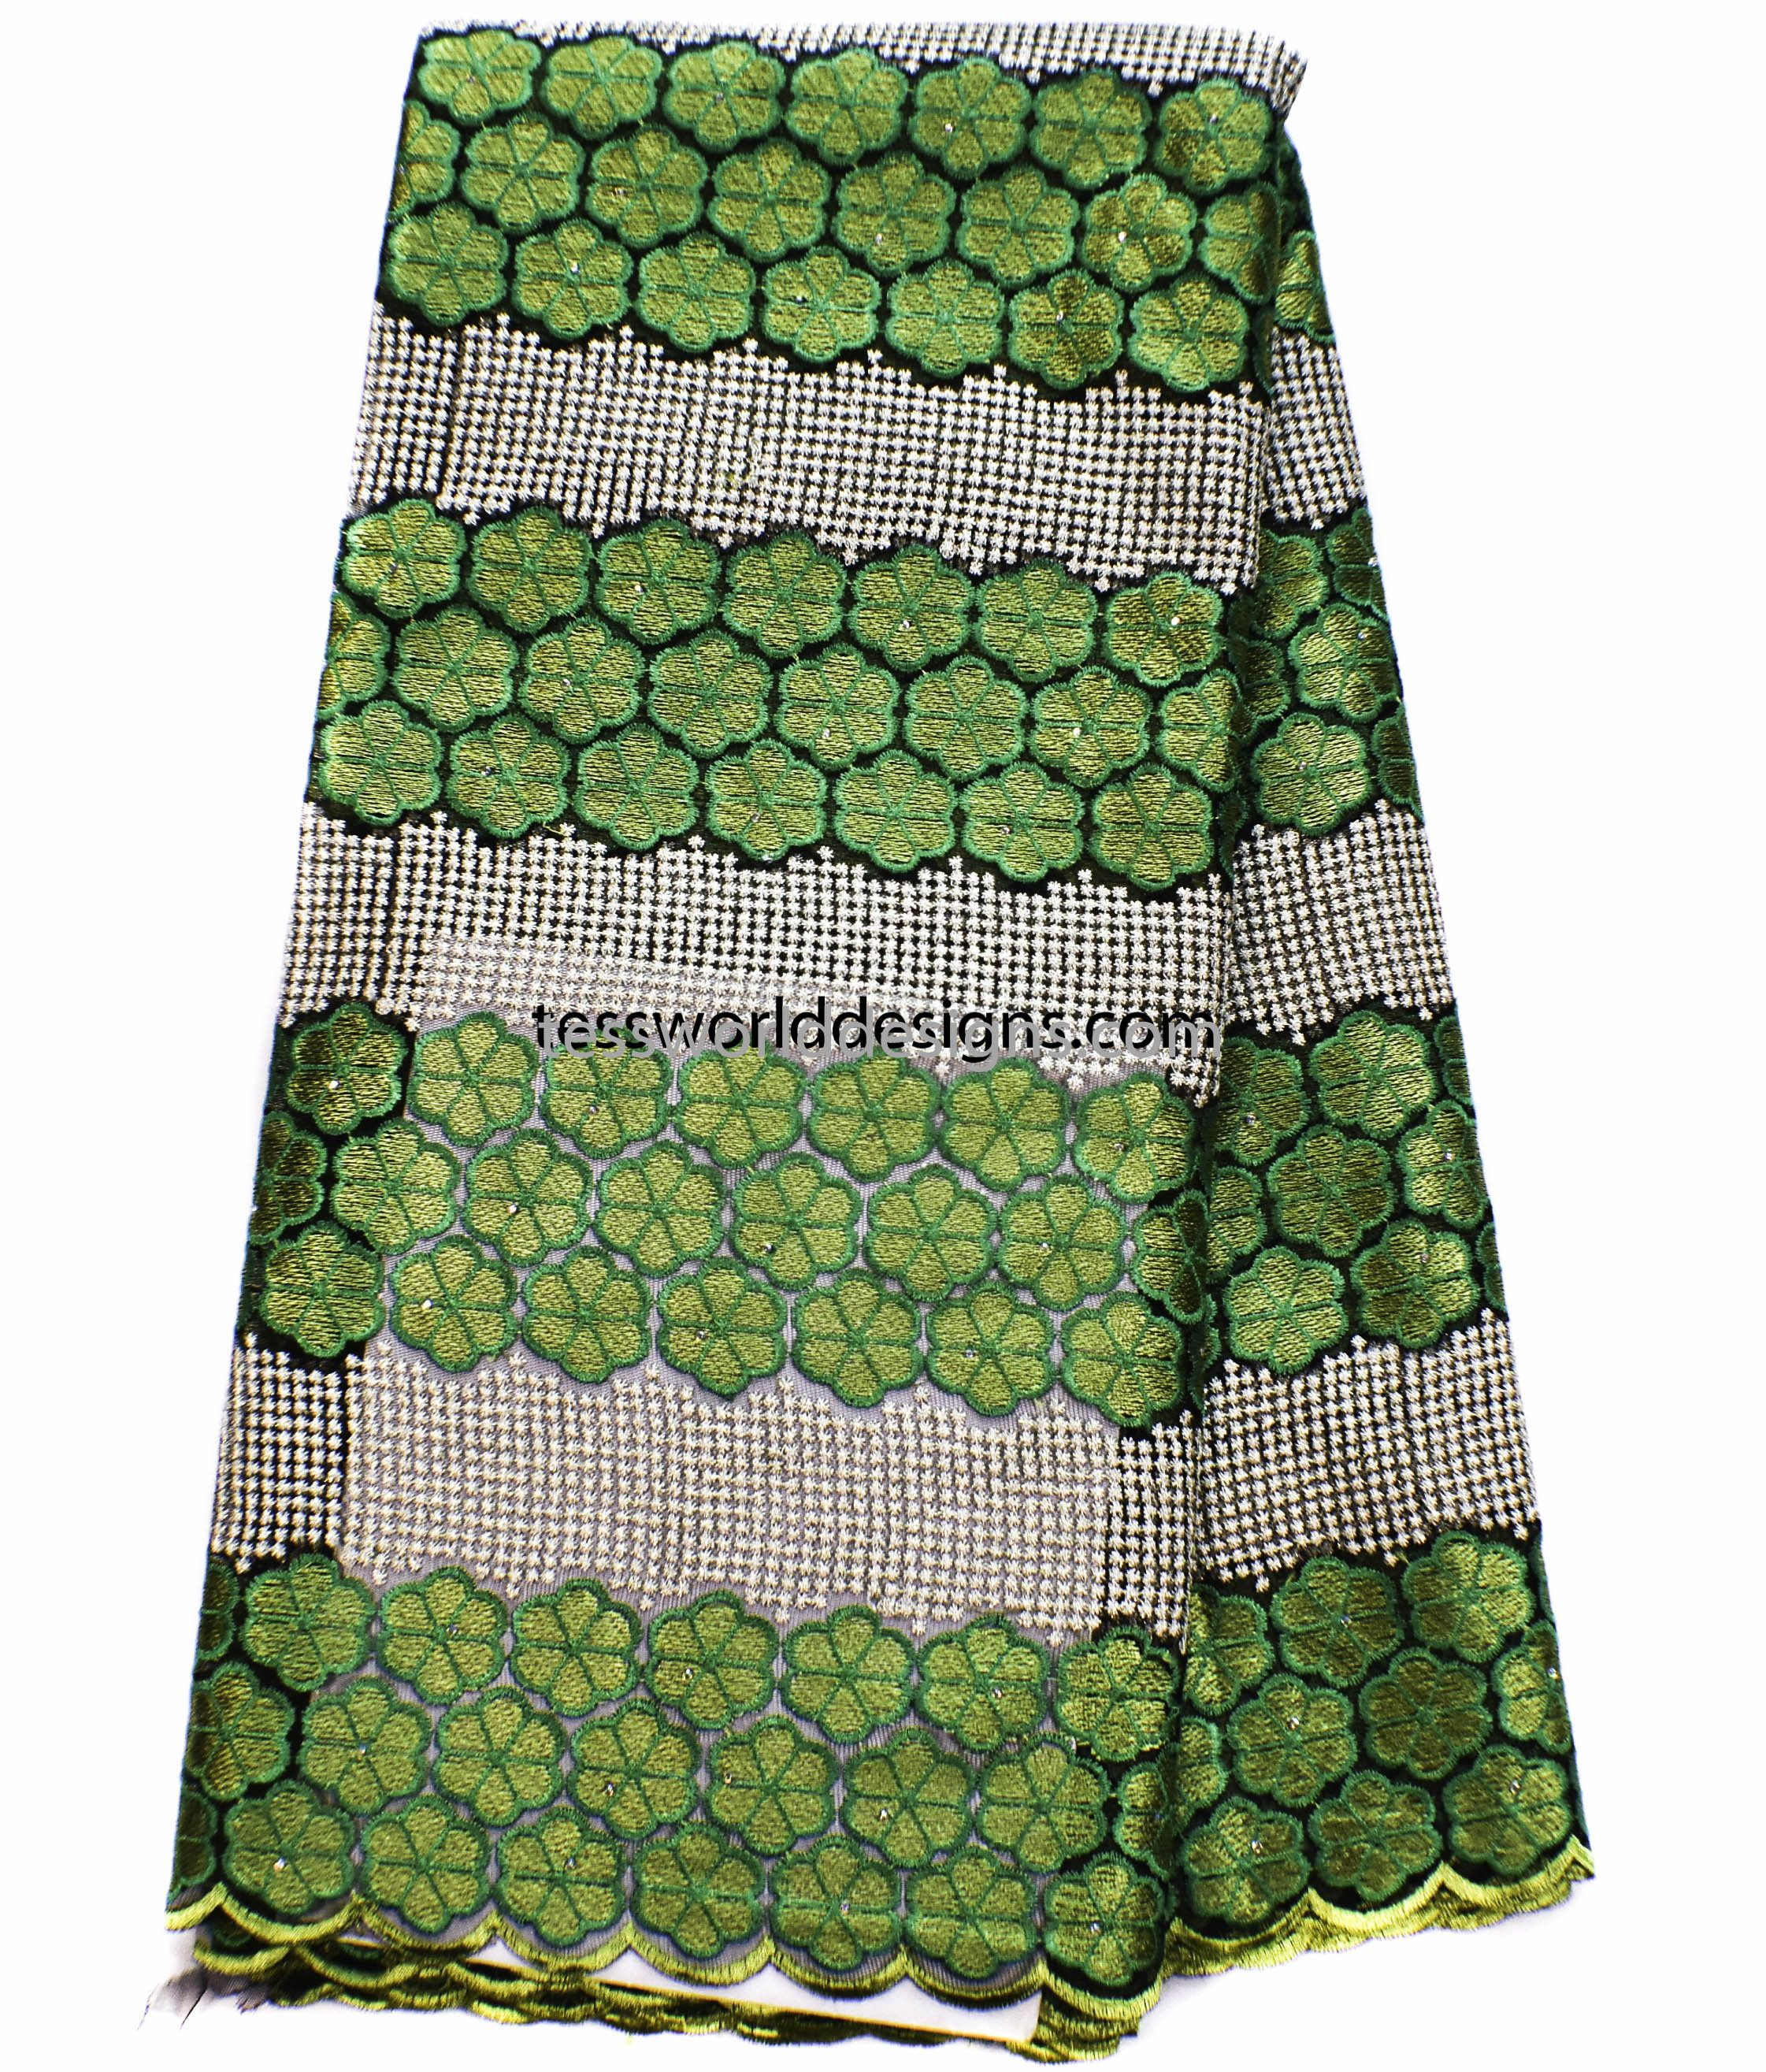 d73758feb3 African lace fabric, wholesale/ green French lace/ African lace ...